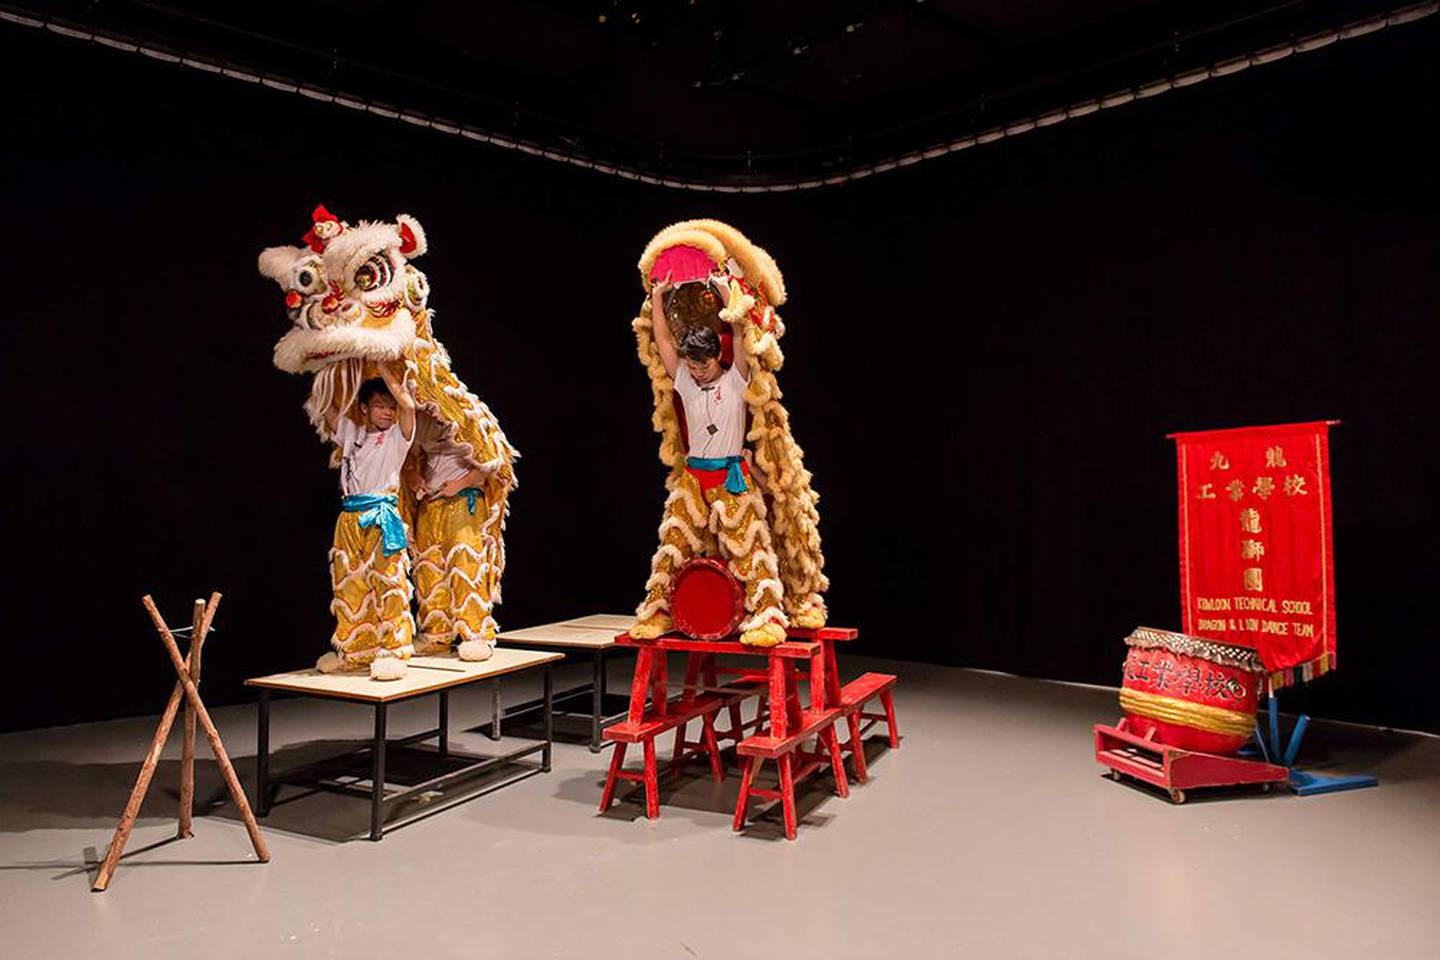 Samson Young, Muted Situation #2: Muted Lion Dance, 2014, instruction score, video. (Production Still) © Samson Young. Image courtesy the artist. Photo Credit: Dennis Man Wing Leung.